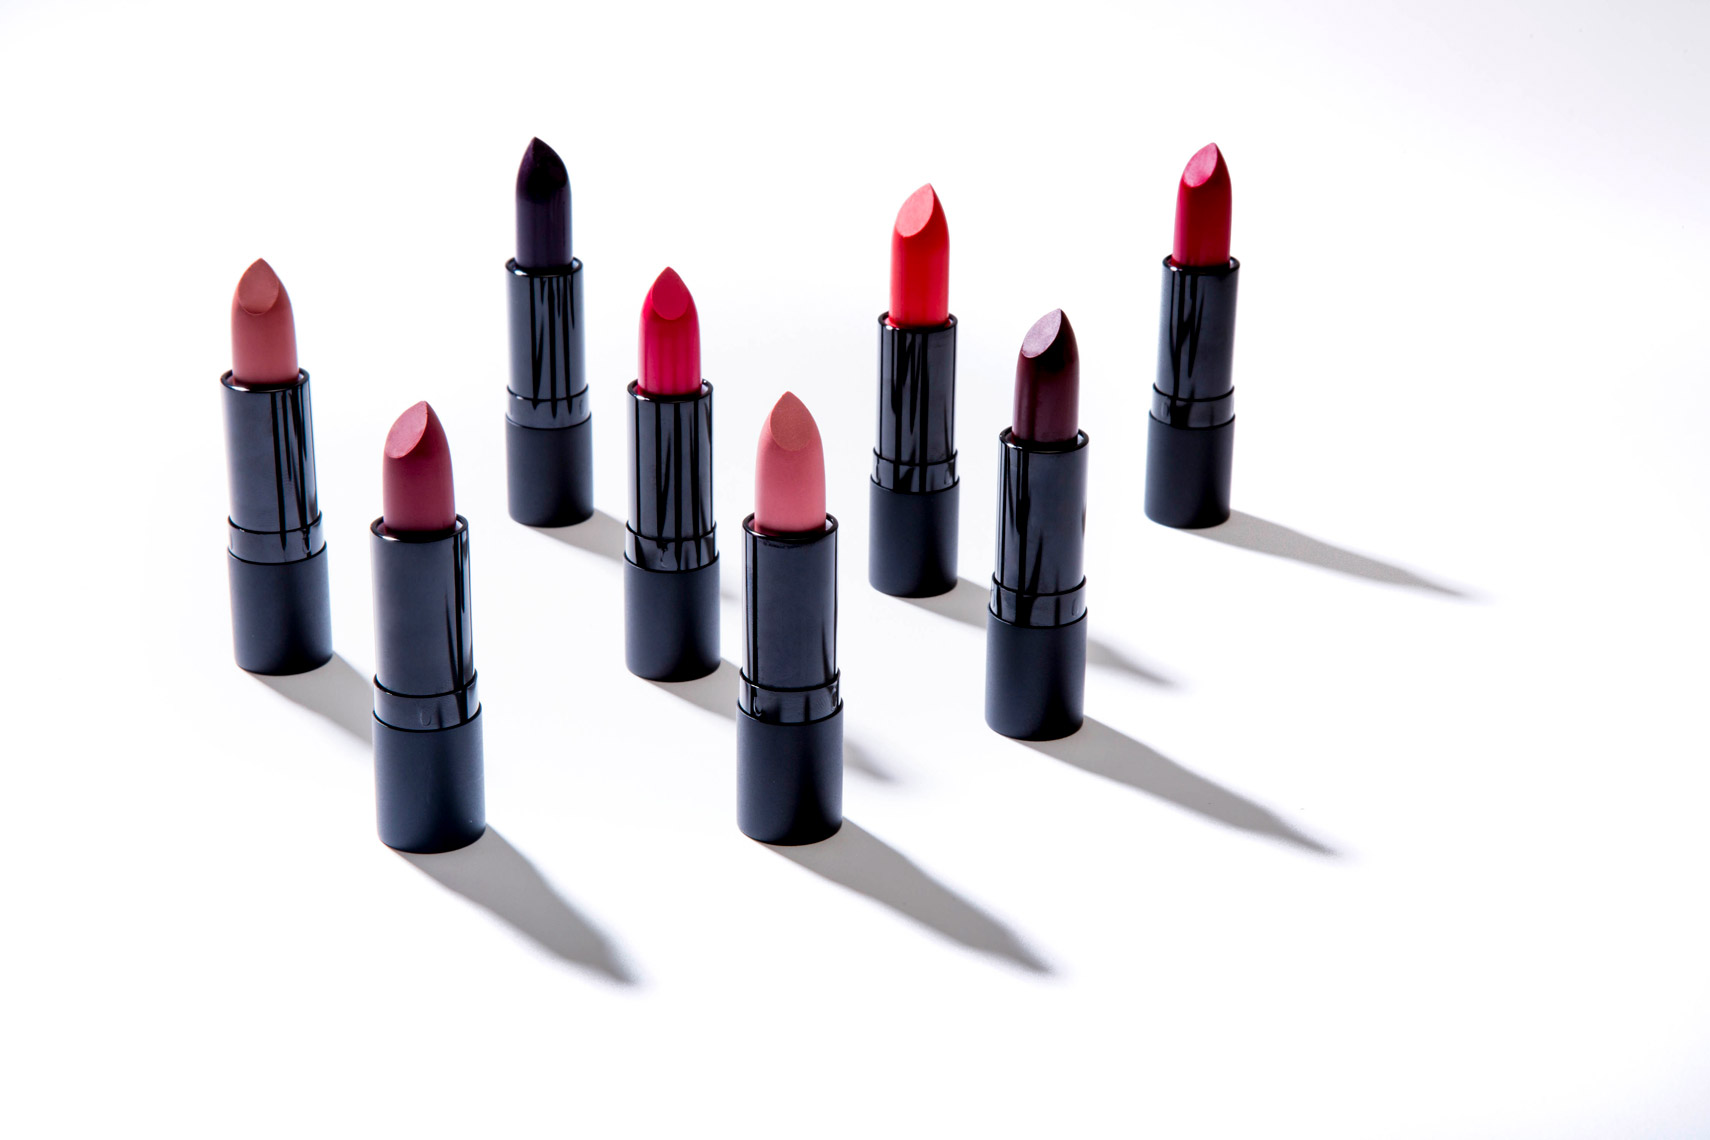 Crunchi, Lipstick, Makeup, Cosmetics, Makeup Photography, Cosmetic Photography, Creative Still, Jewelry, fashion jewelry, jewelry photography, product photography, product photo, studio photography, Ian Jacob, Ian Jacob Photography